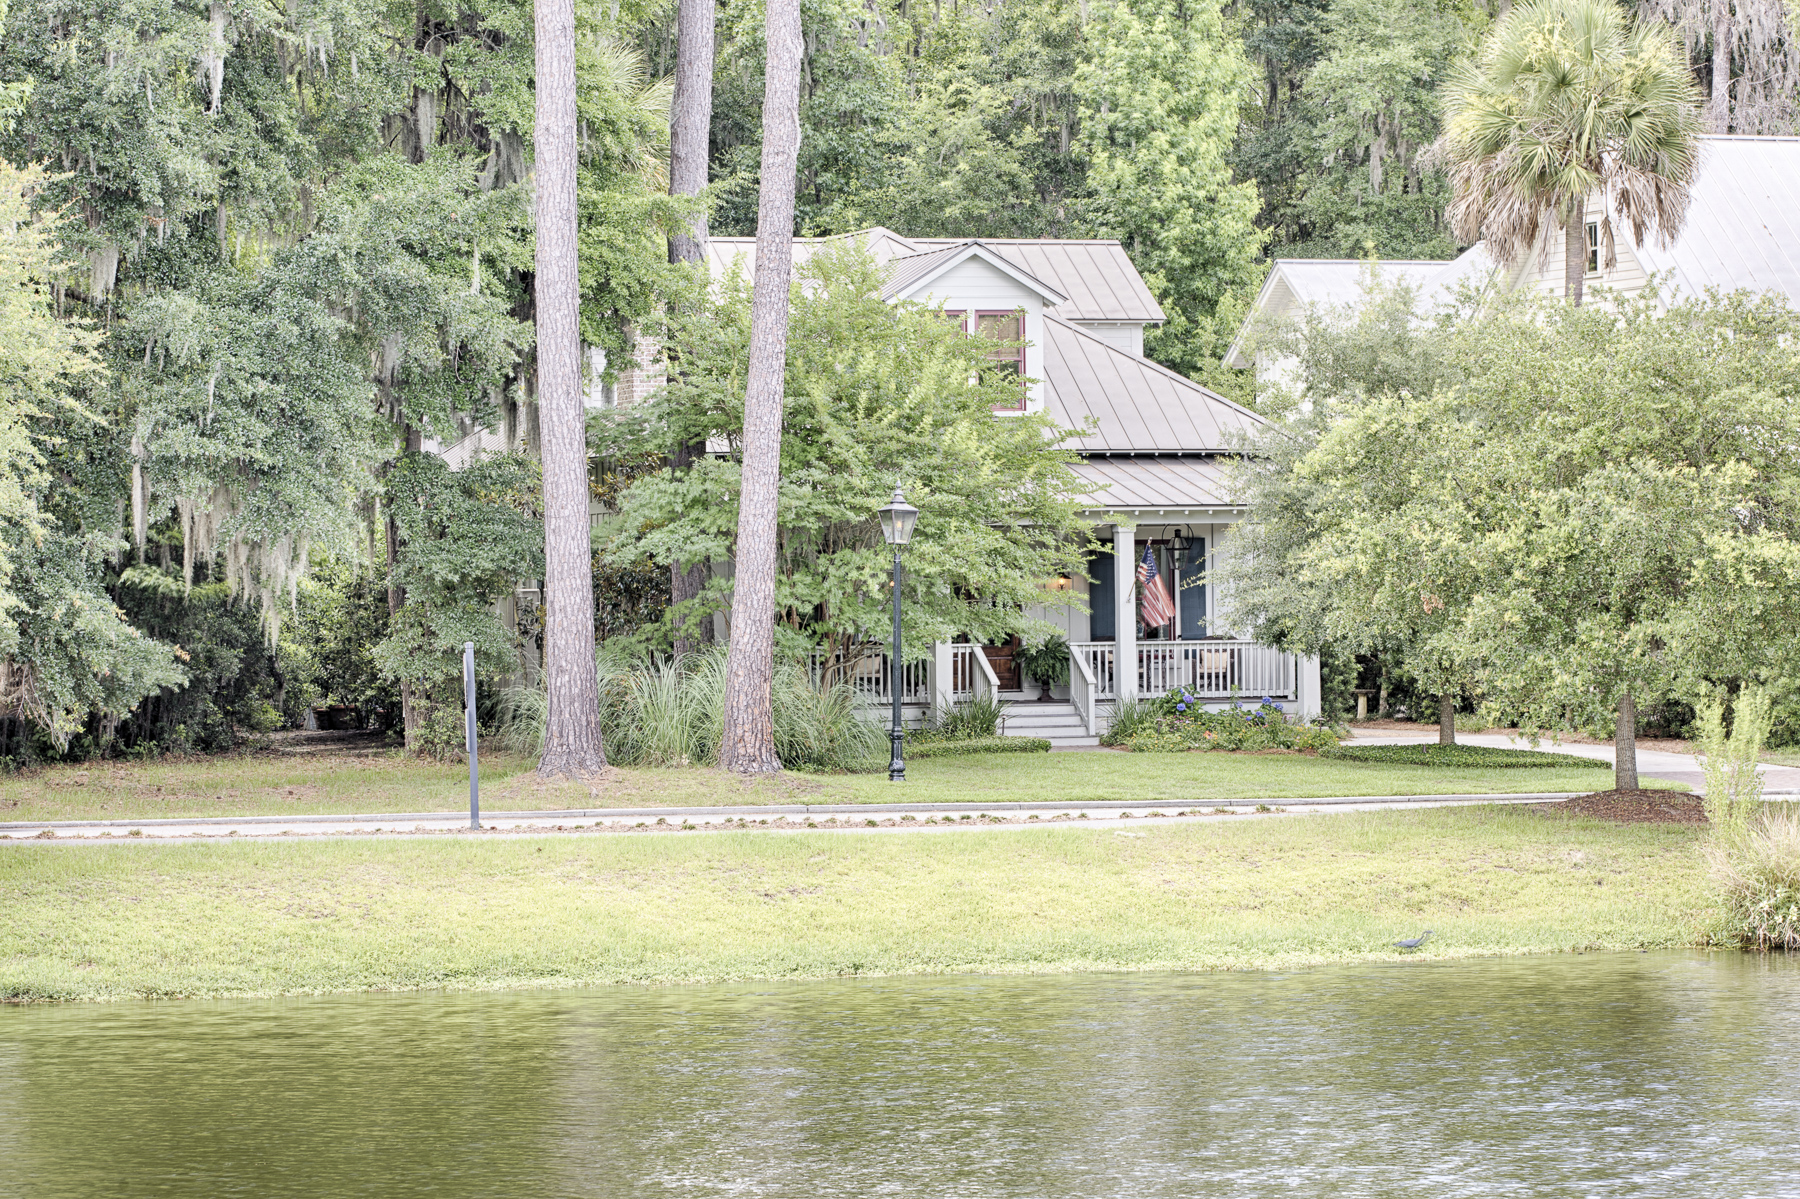 Single Family Home for Sale at Palmetto Bluff Bluffton, South Carolina 29910 United States